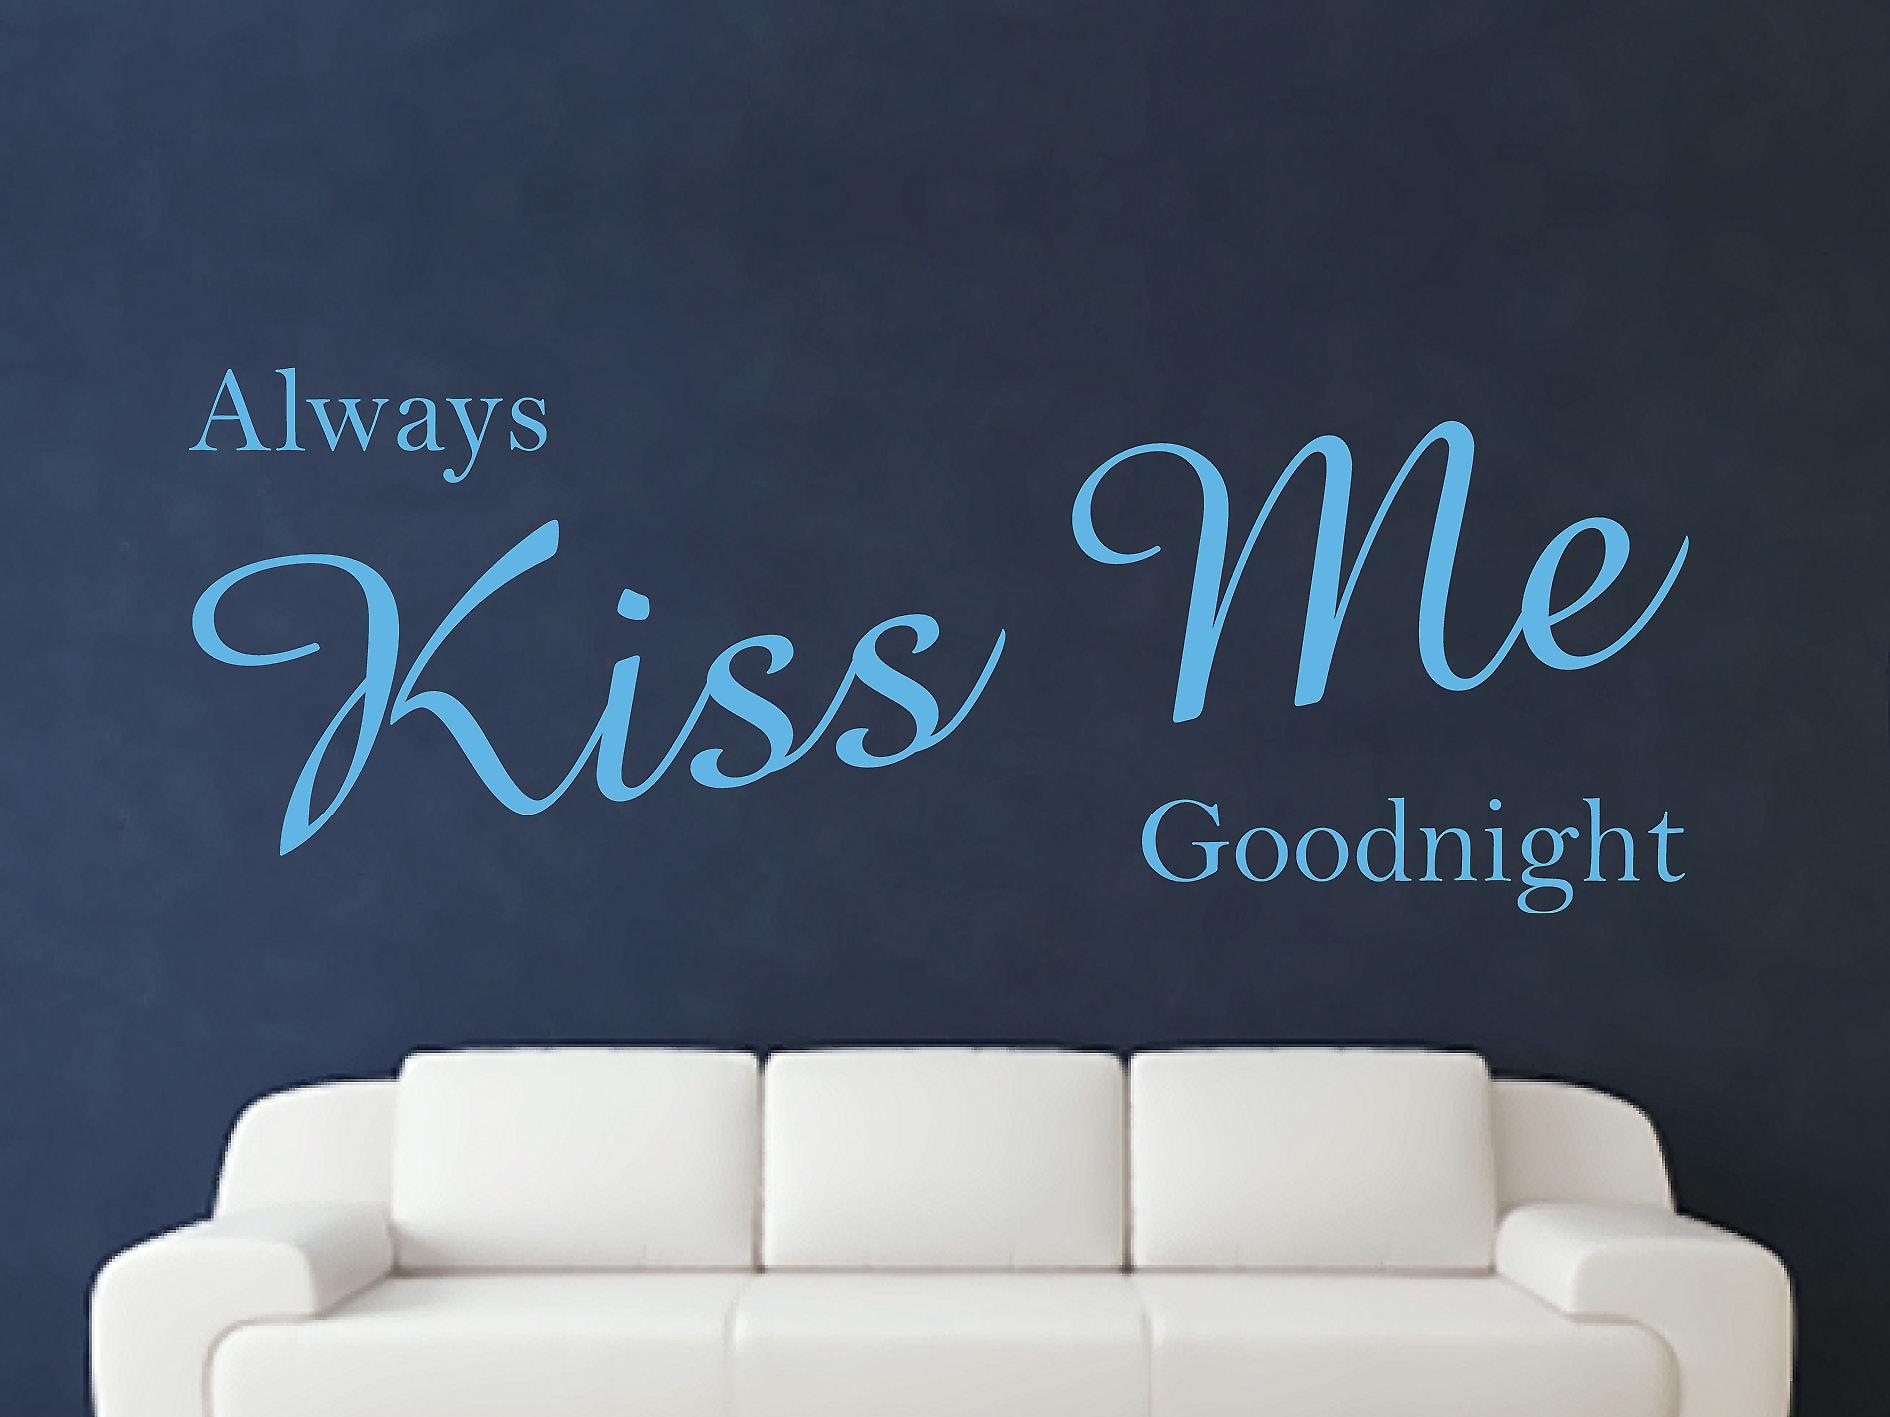 Always Kiss Me Goodnight Wall Art Sticker - Arctic Blue